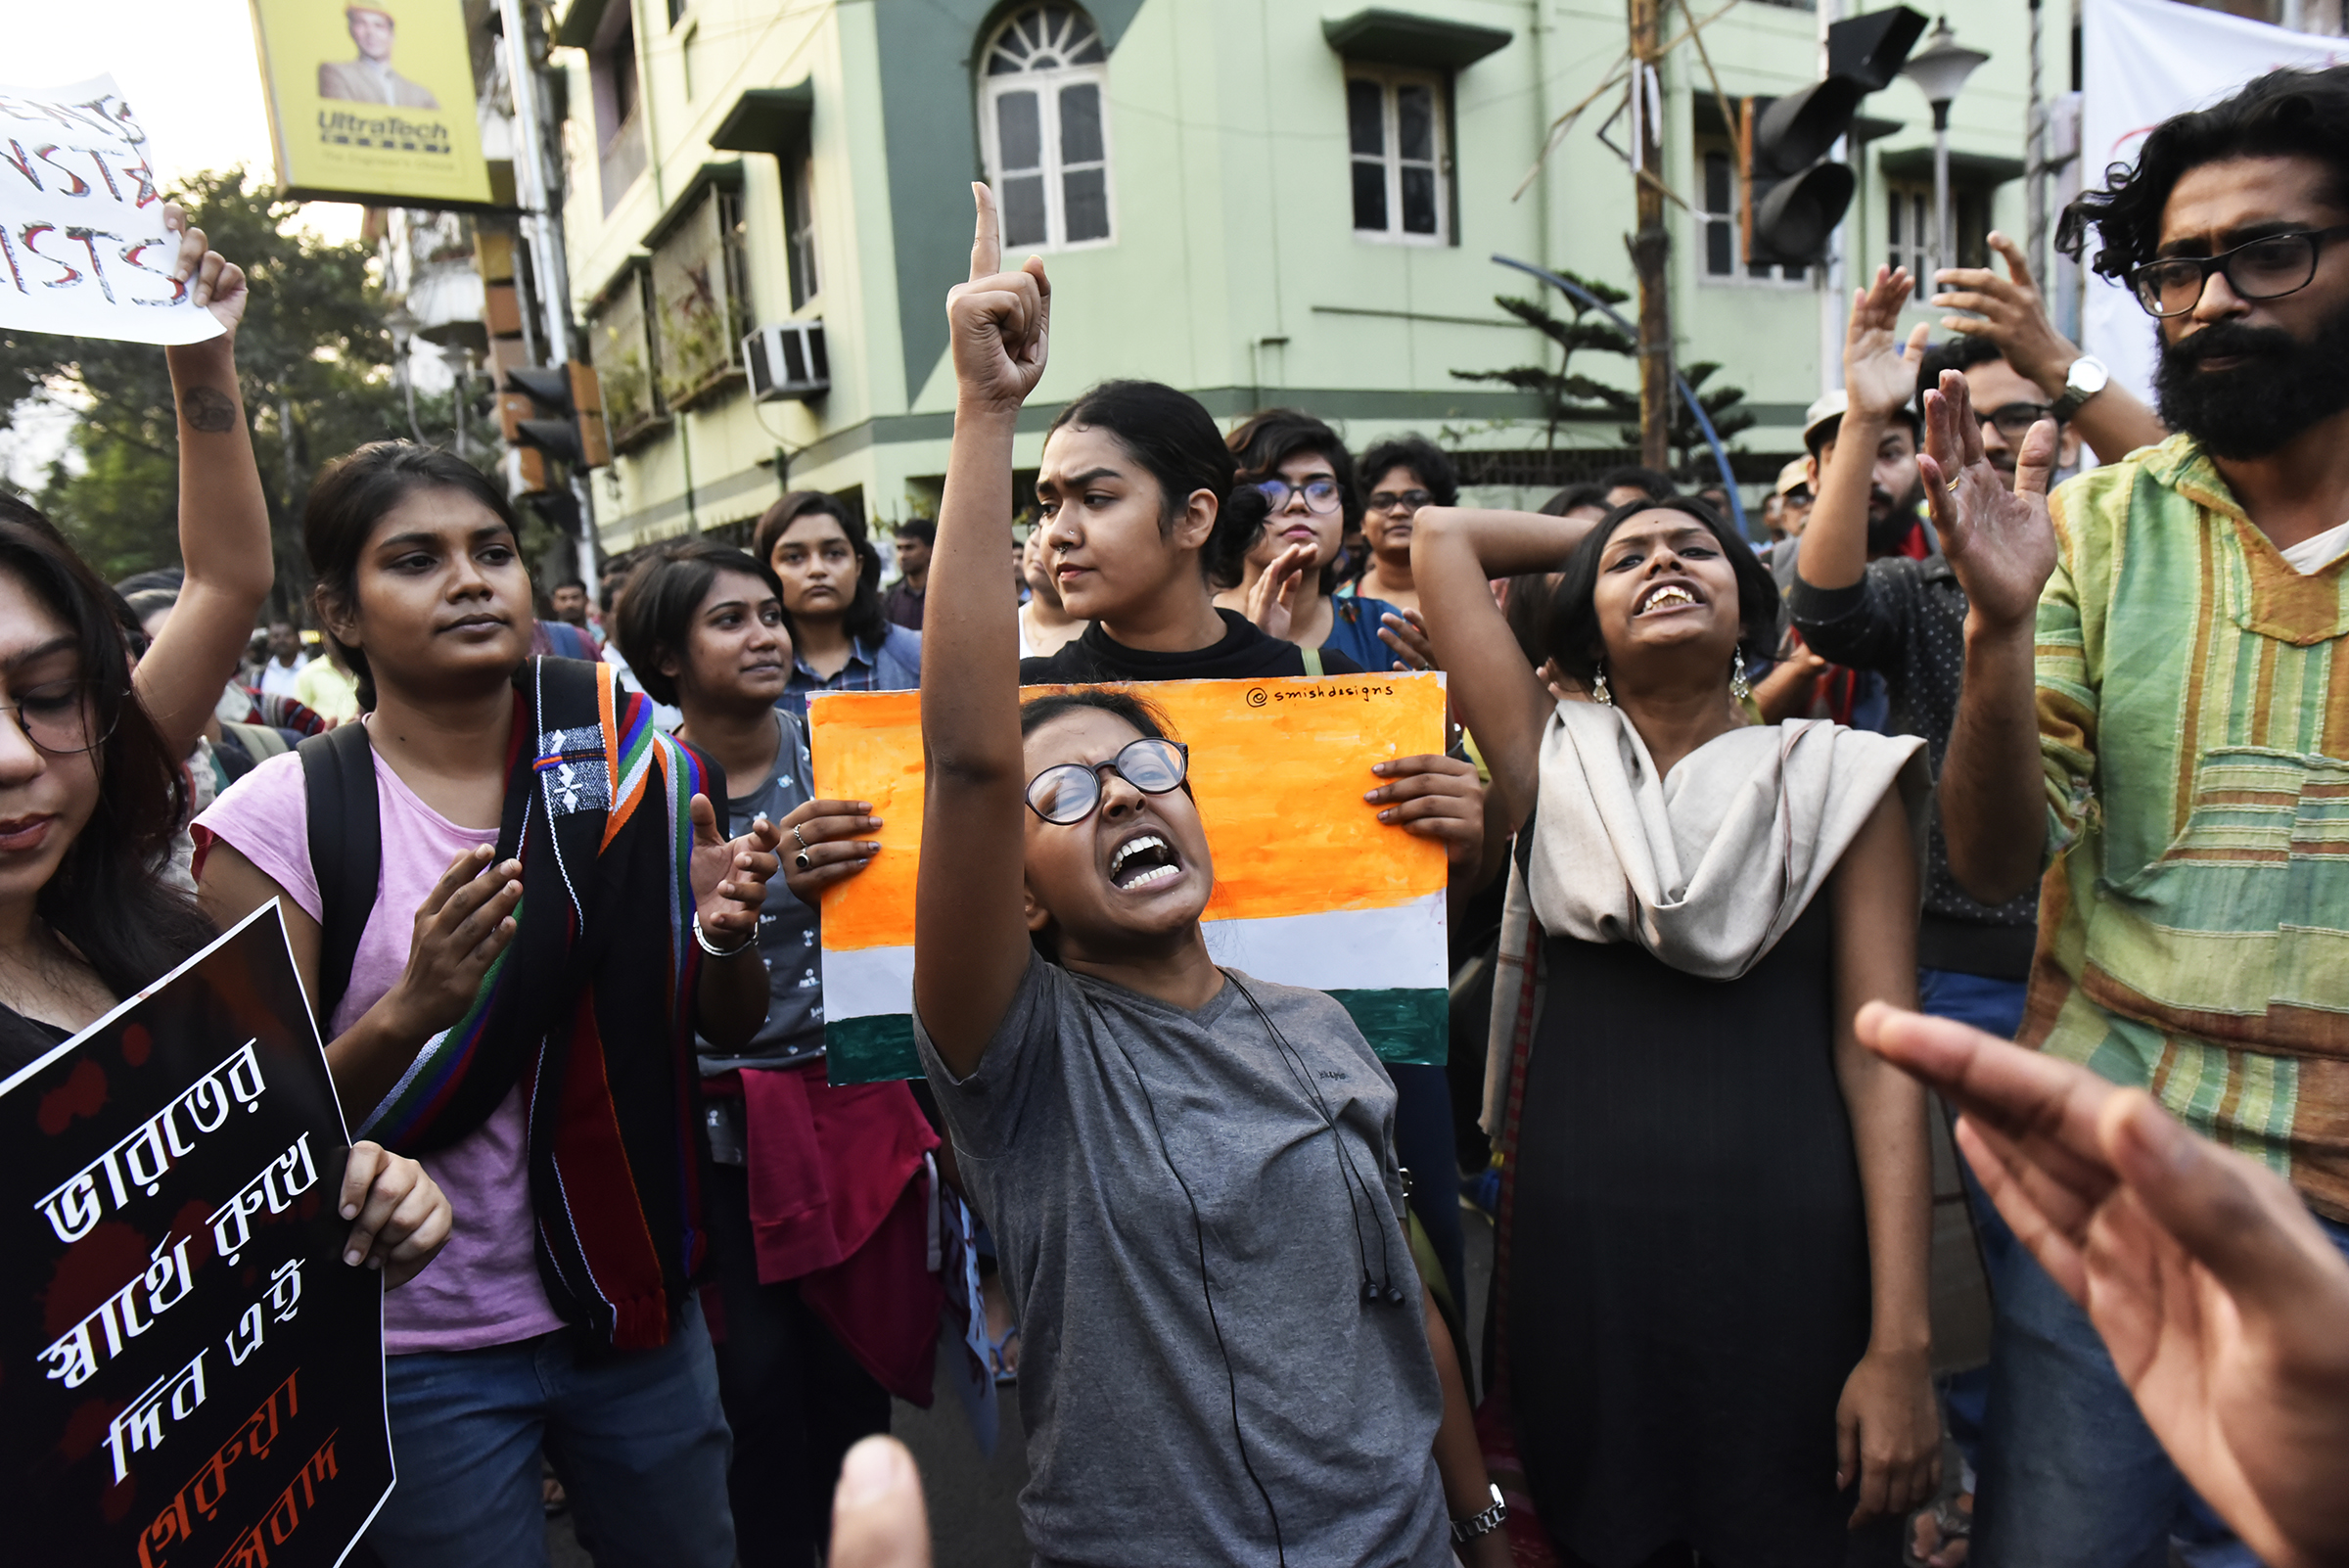 Jadavpur University students in Kolkata demonstrate against police brutality towards the students of Jamia Millia Islamia University in New Delhi, who were protesting against the approval of the Citizenship Amendment Bill (CAB) on Dec. 16, 2019.